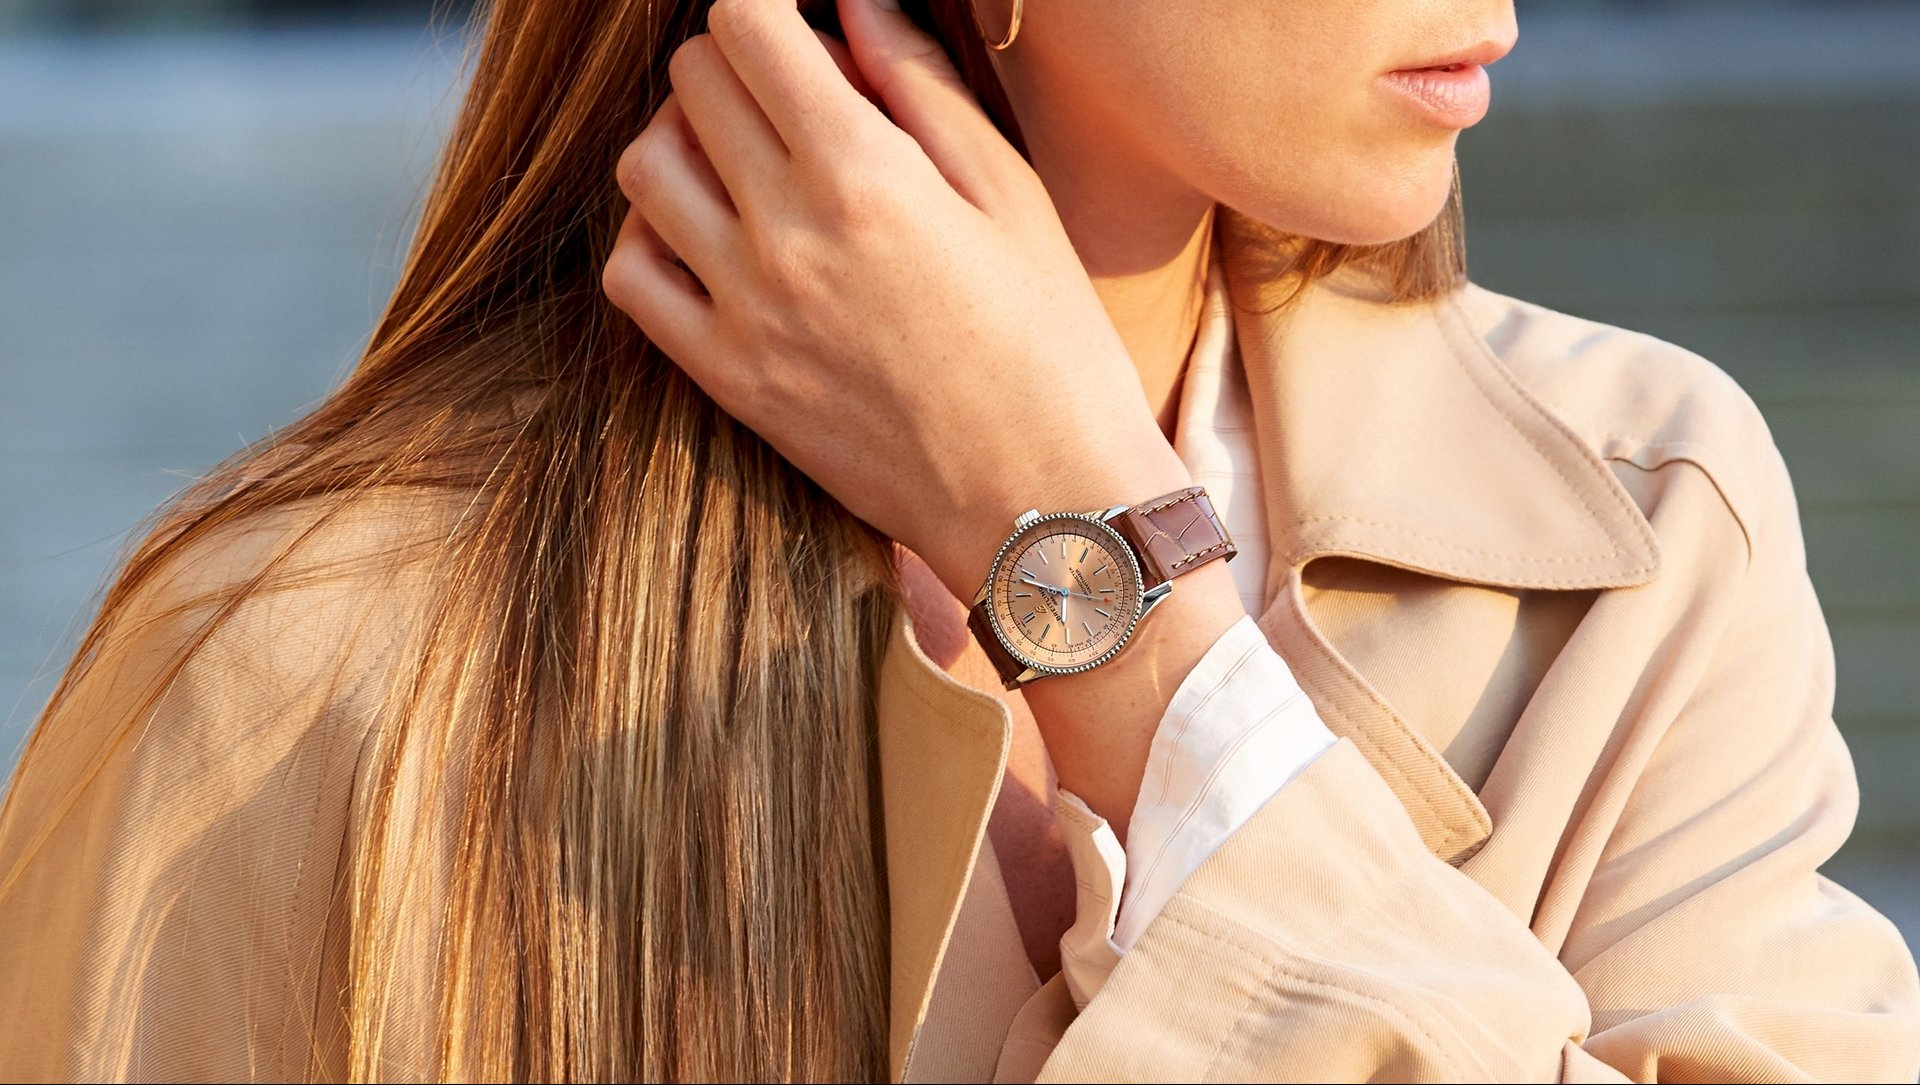 16_female-model-wearing-the-navitimer-automatic-35-with-a-copper-colored-dial-and-diamond-hour-markers-with-a-burgundy-alligator-leather-strap.jpg